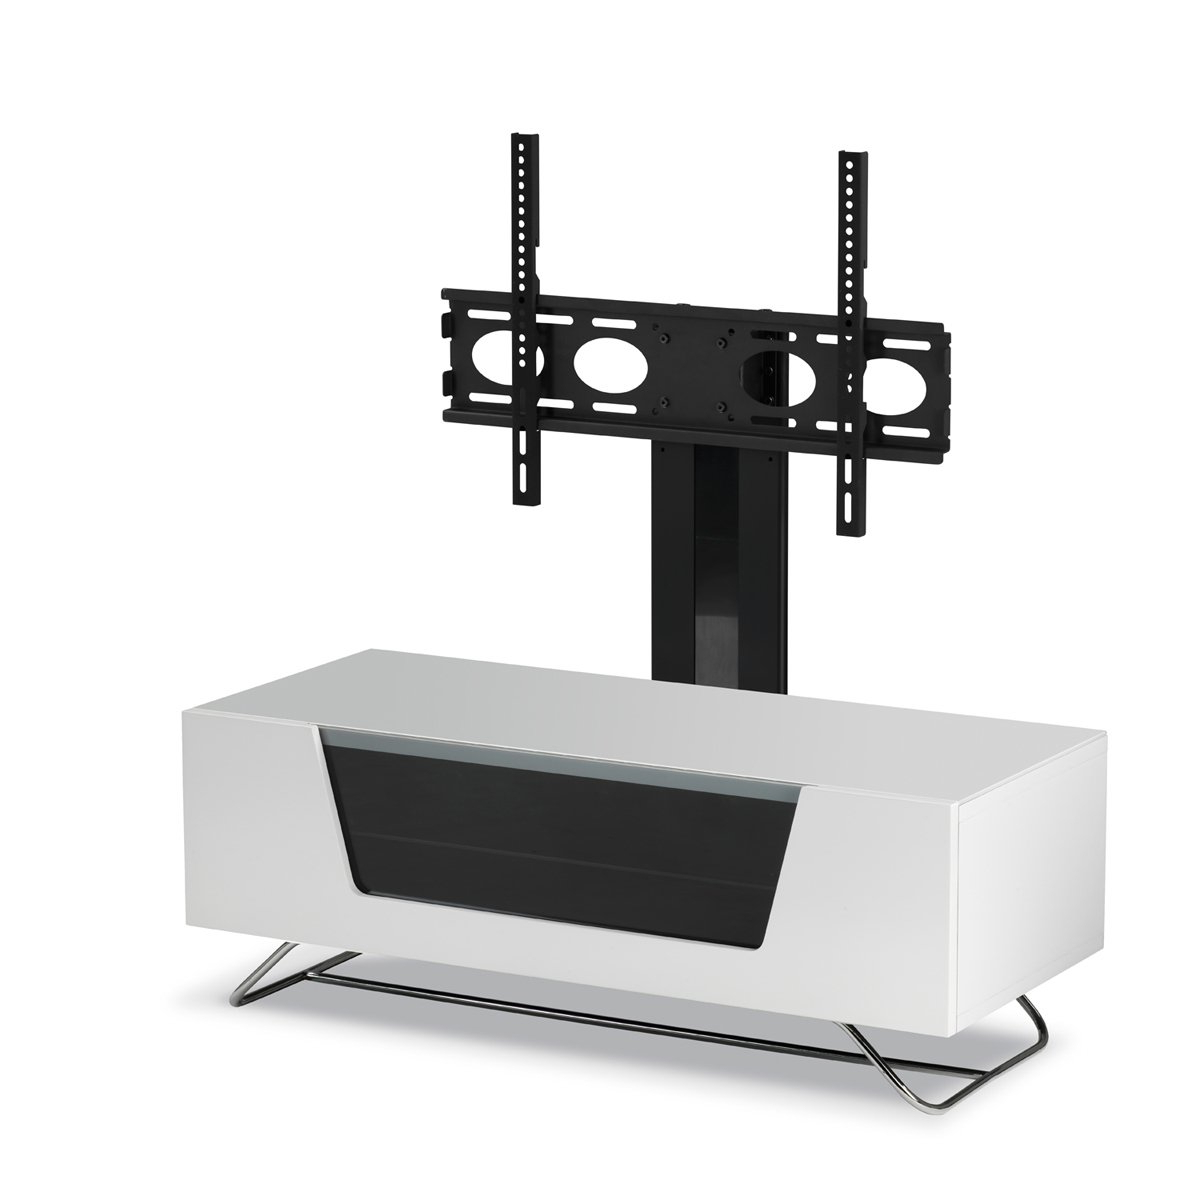 Widely Used White Cantilever Tv Stands Inside Alphason Chromium White Cantilever Tv Stand: Amazon.co (View 4 of 20)